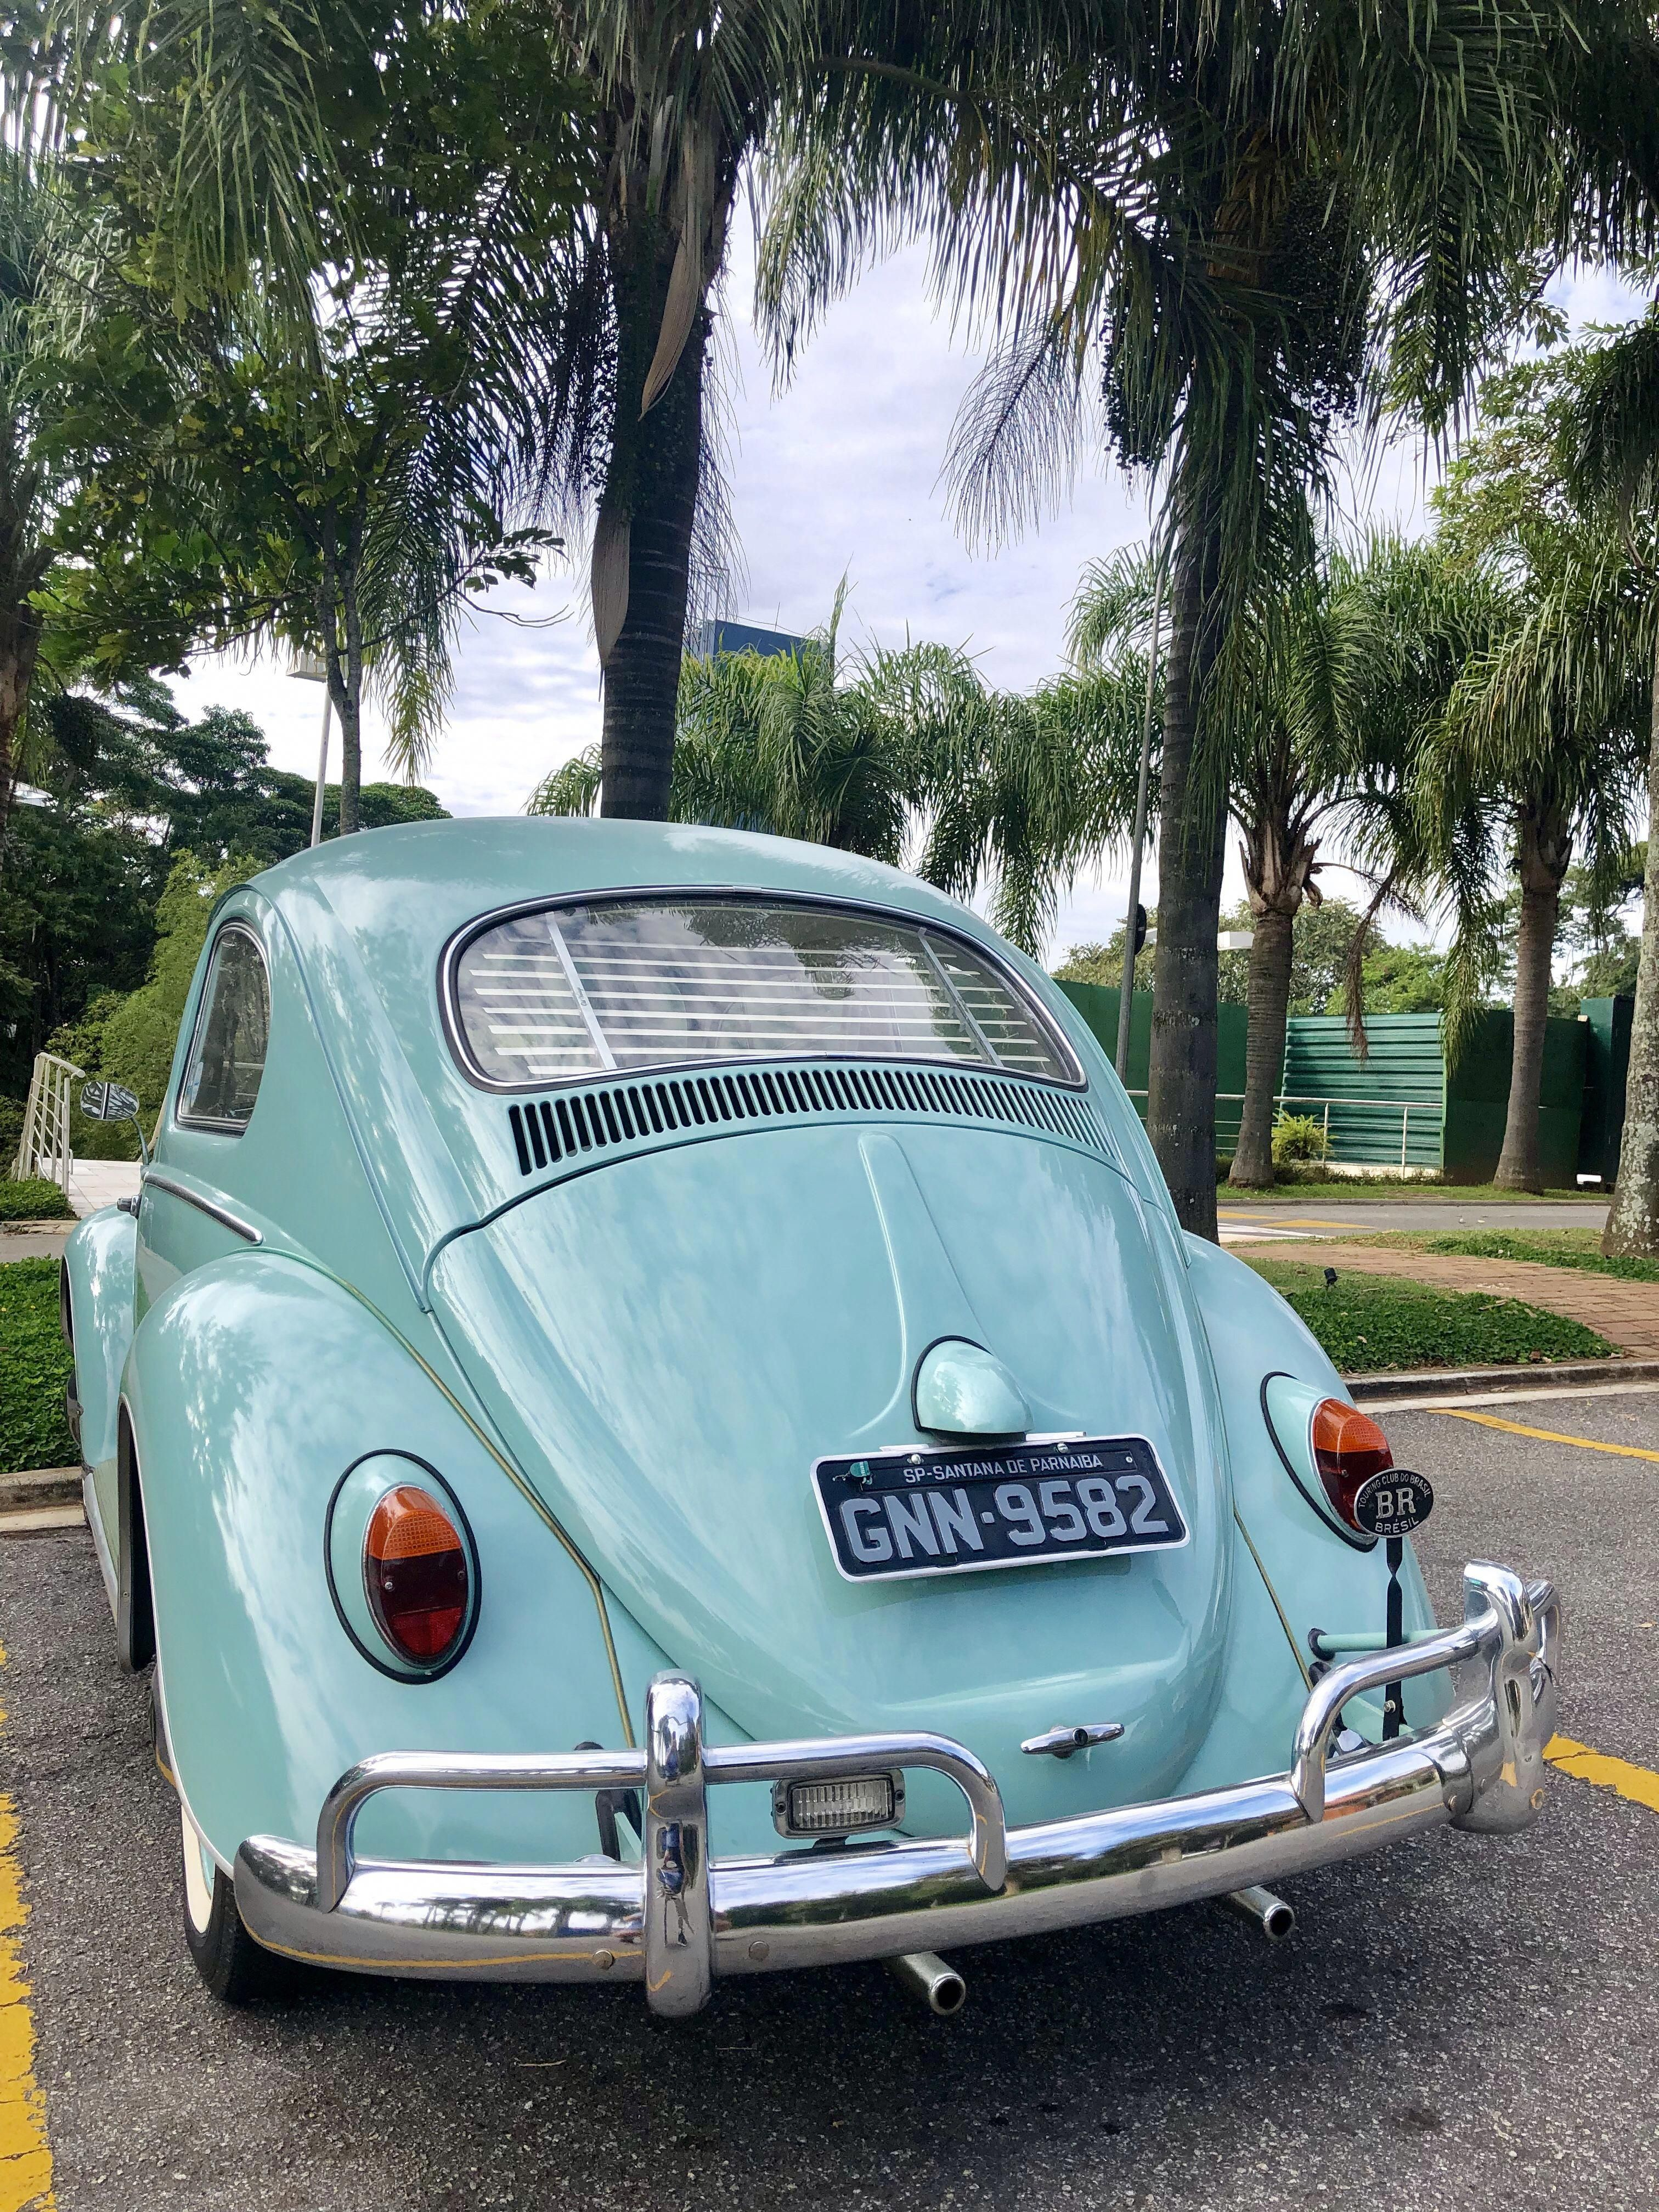 Beetle Volkswagonclassiccars Volkswagen Classiccars Carrosantigos Classic Cars Volkswagen Classic Cars Muscle